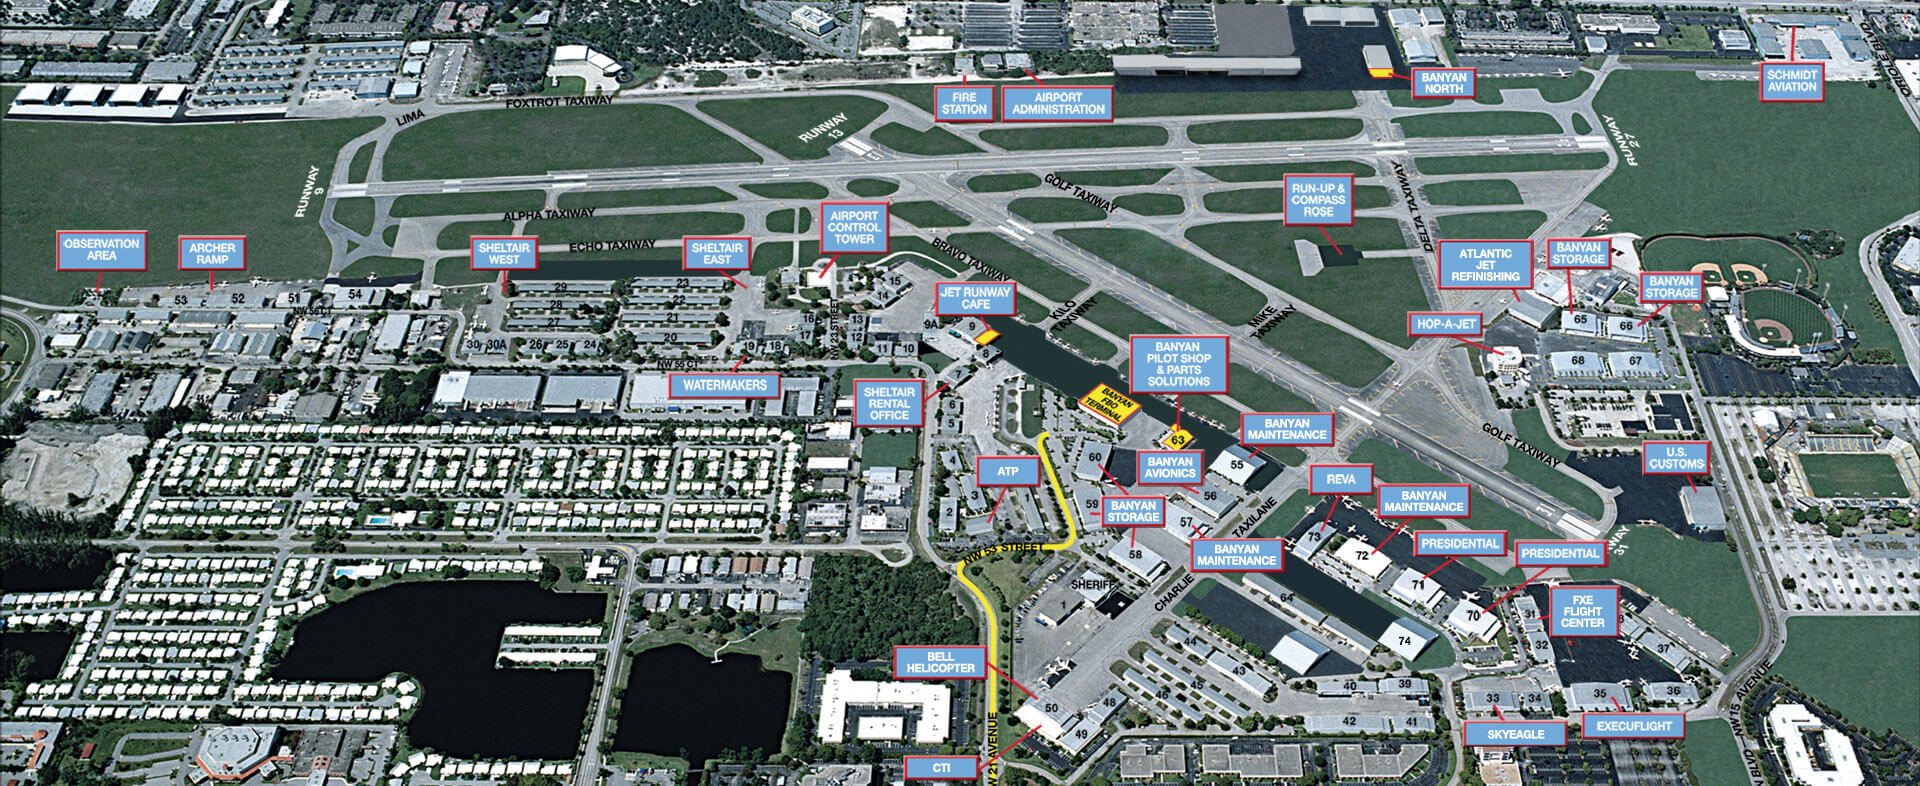 Ft. Lauderdale Executive Airport map FXE